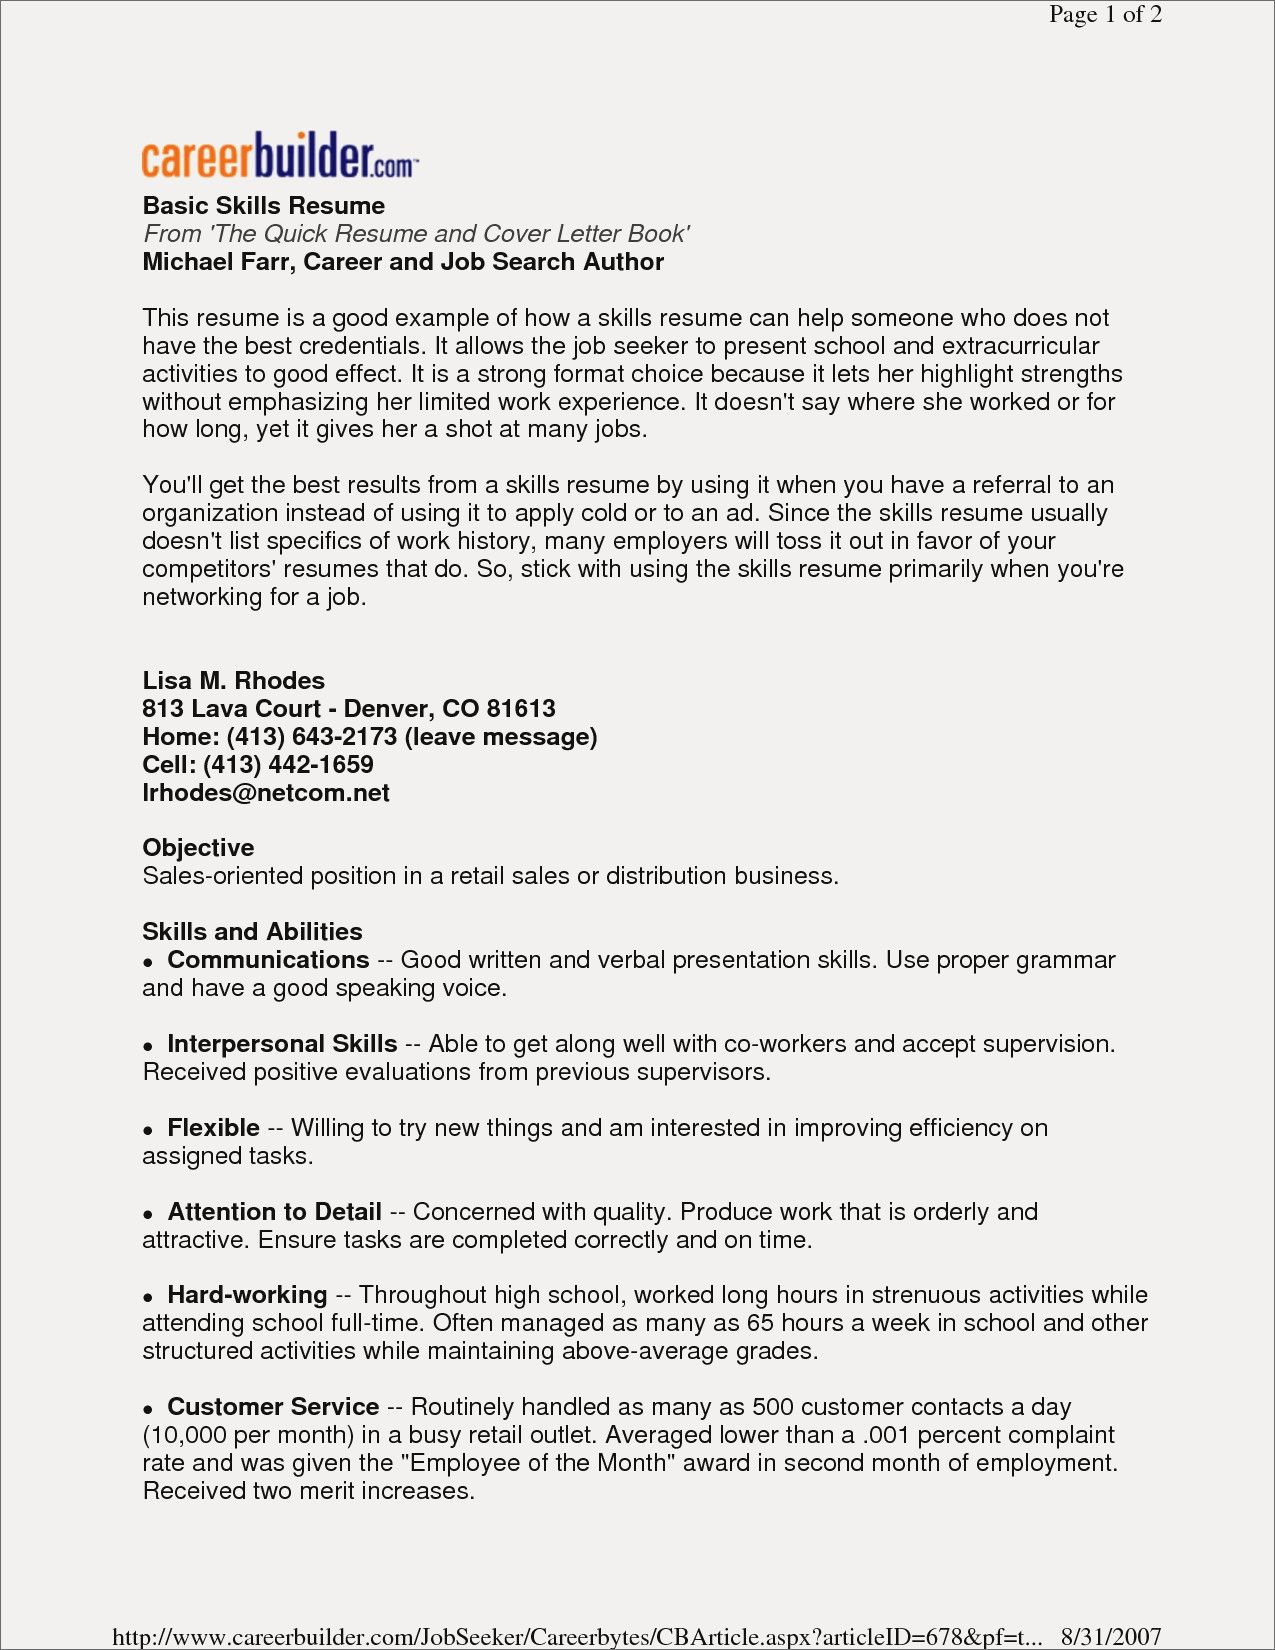 76 Awesome Photos Of Resume Examples Supervisory Skills Check More At Https Www Ourpetscrawley Com 76 Awesome Photos Of Resume Examples Supervisory Skills